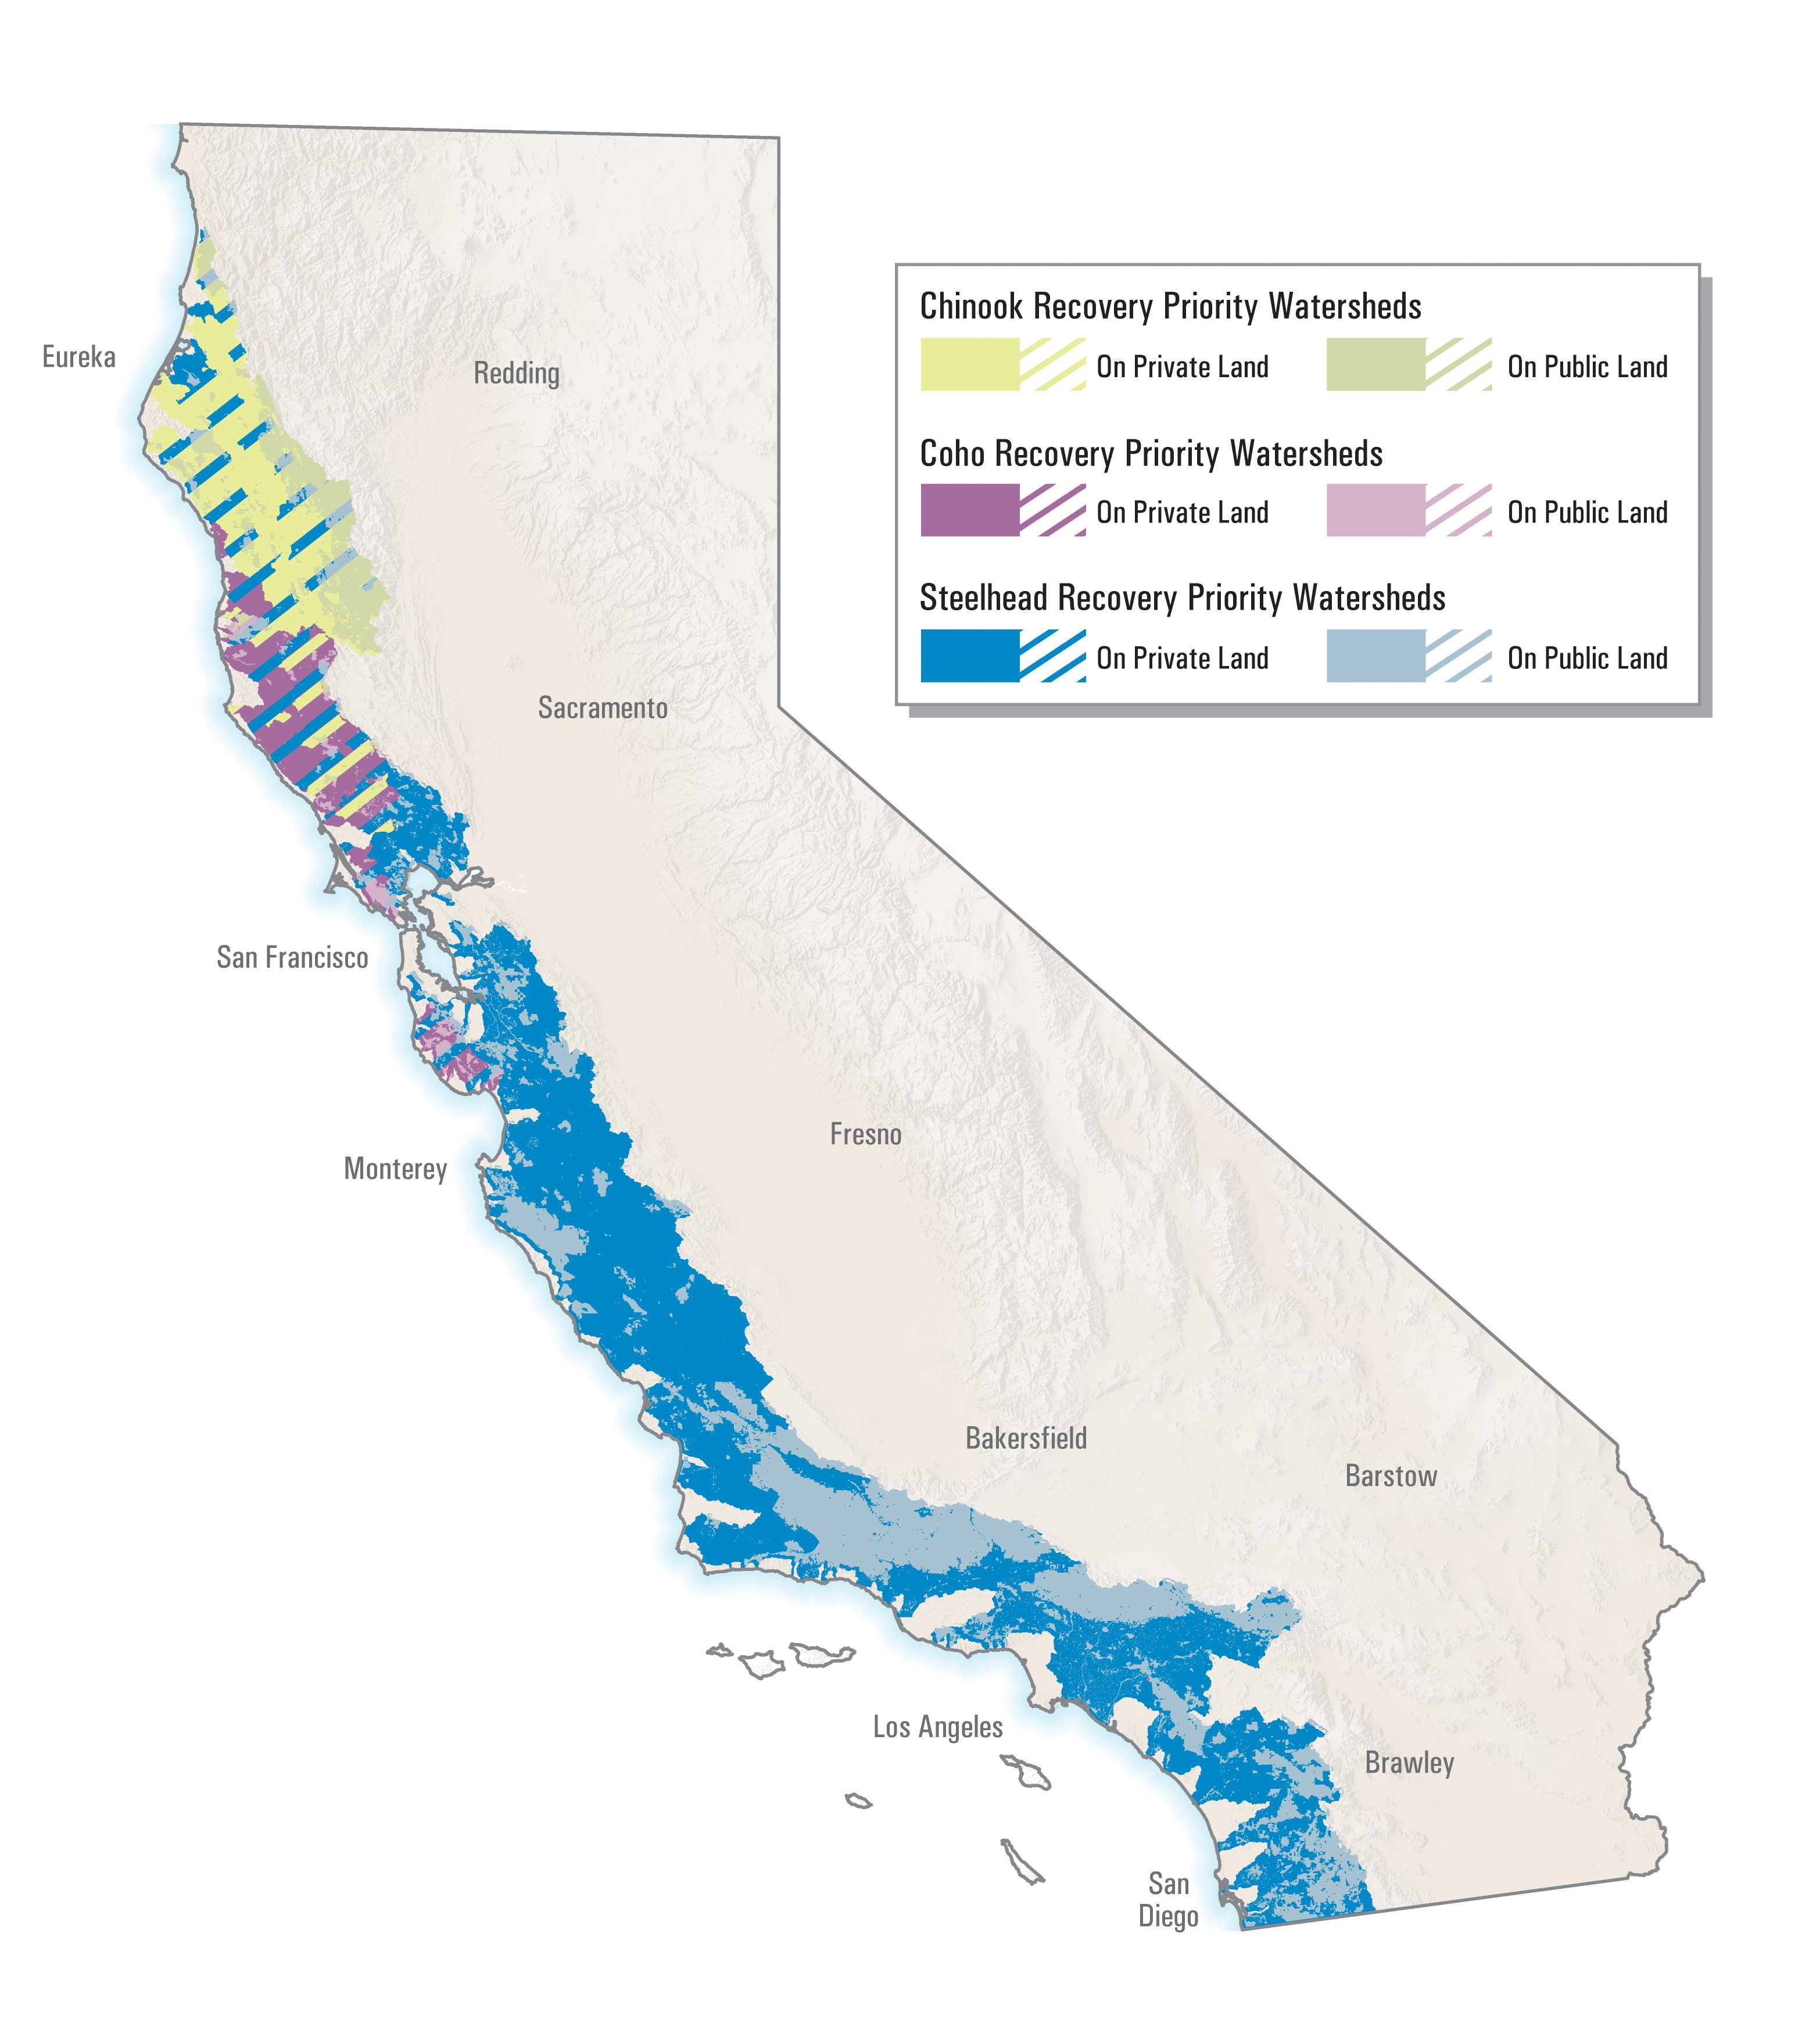 California Relief Map Project Printable Chris Henrick Cartography - California Relief Map Printable